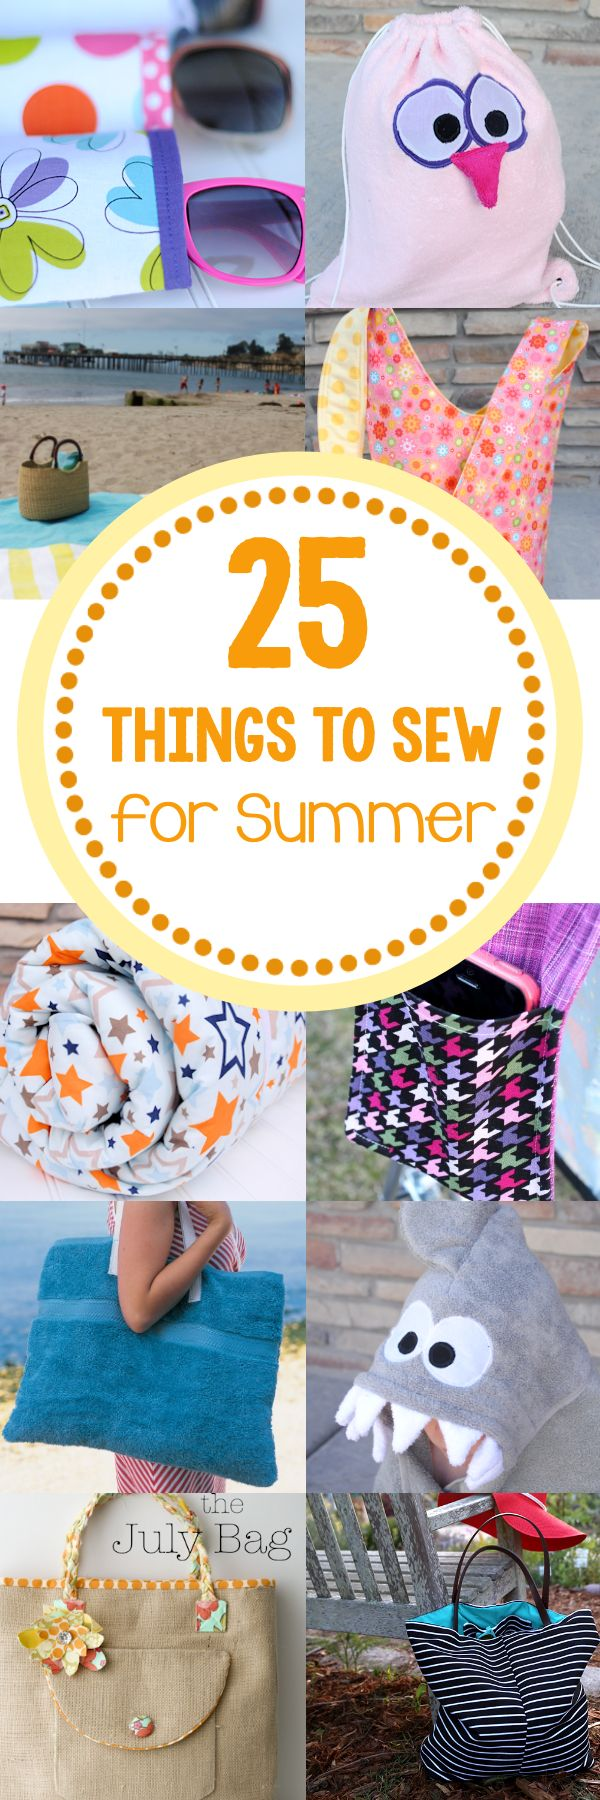 25 Things to Sew for Summer (oliver and s bucket hat pattern link)